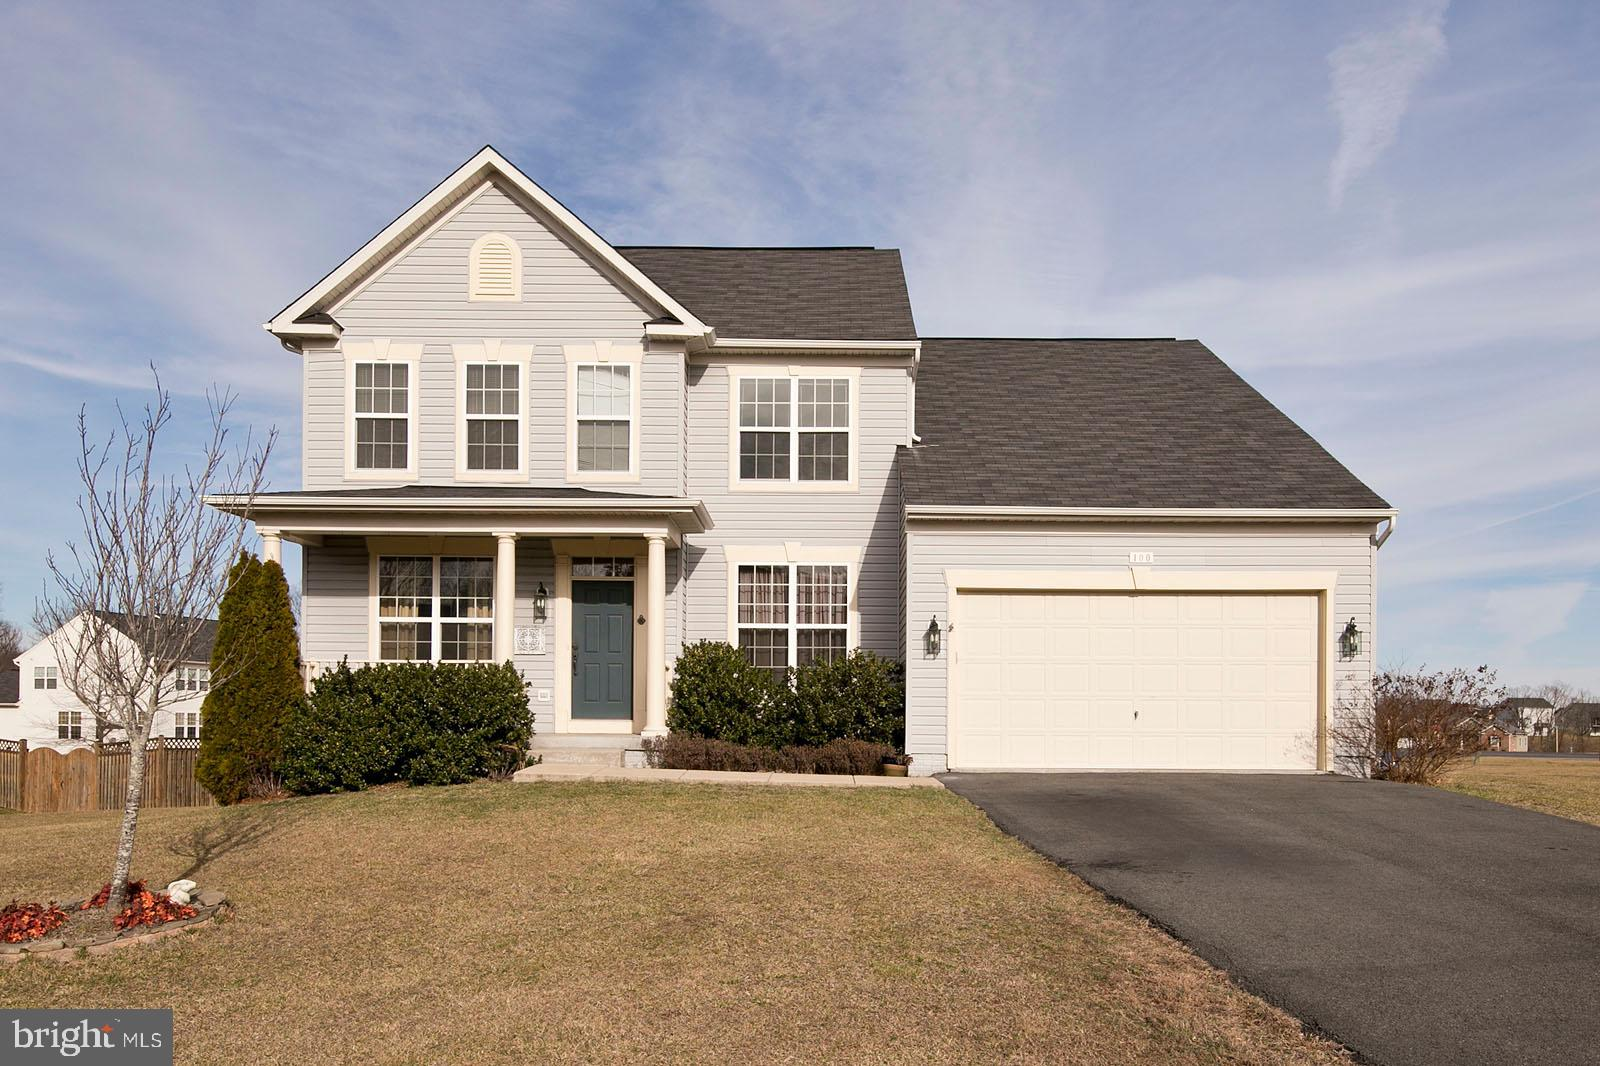 This 4 bedroom 2.5 bath home is located on a cul de sac in popular Wakeland Manor! This community of